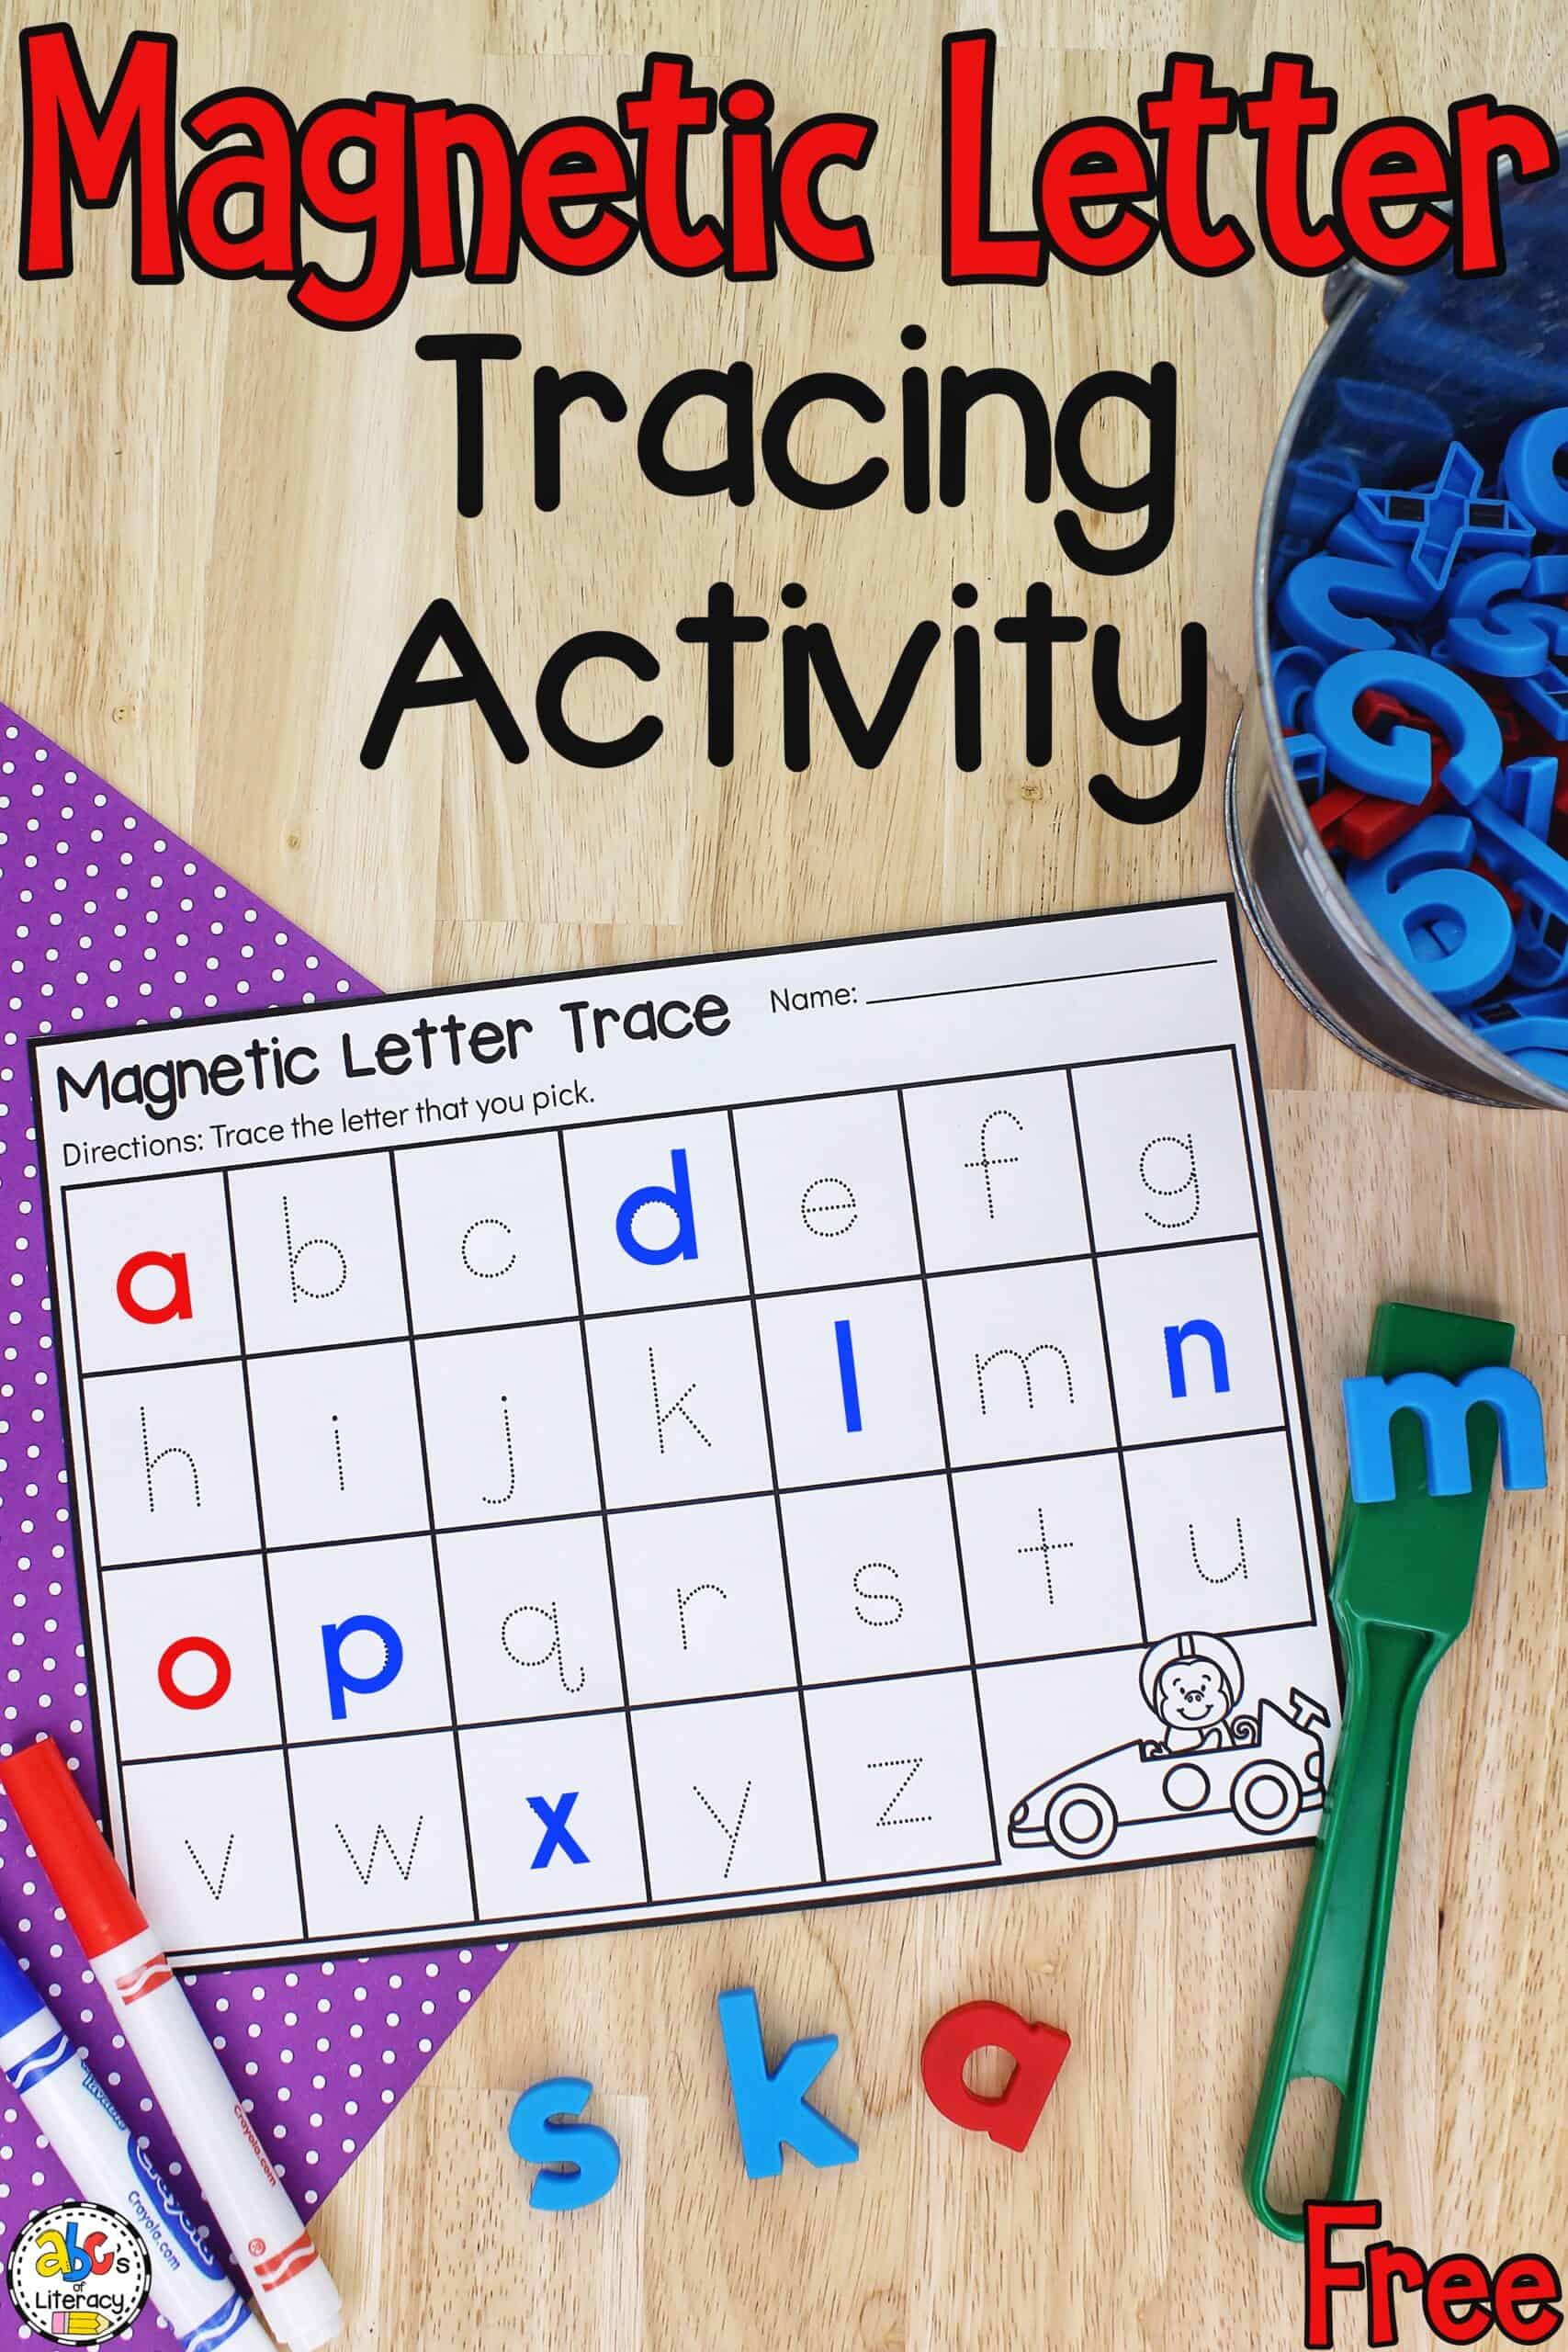 Magnetic Letter Tracing Activity